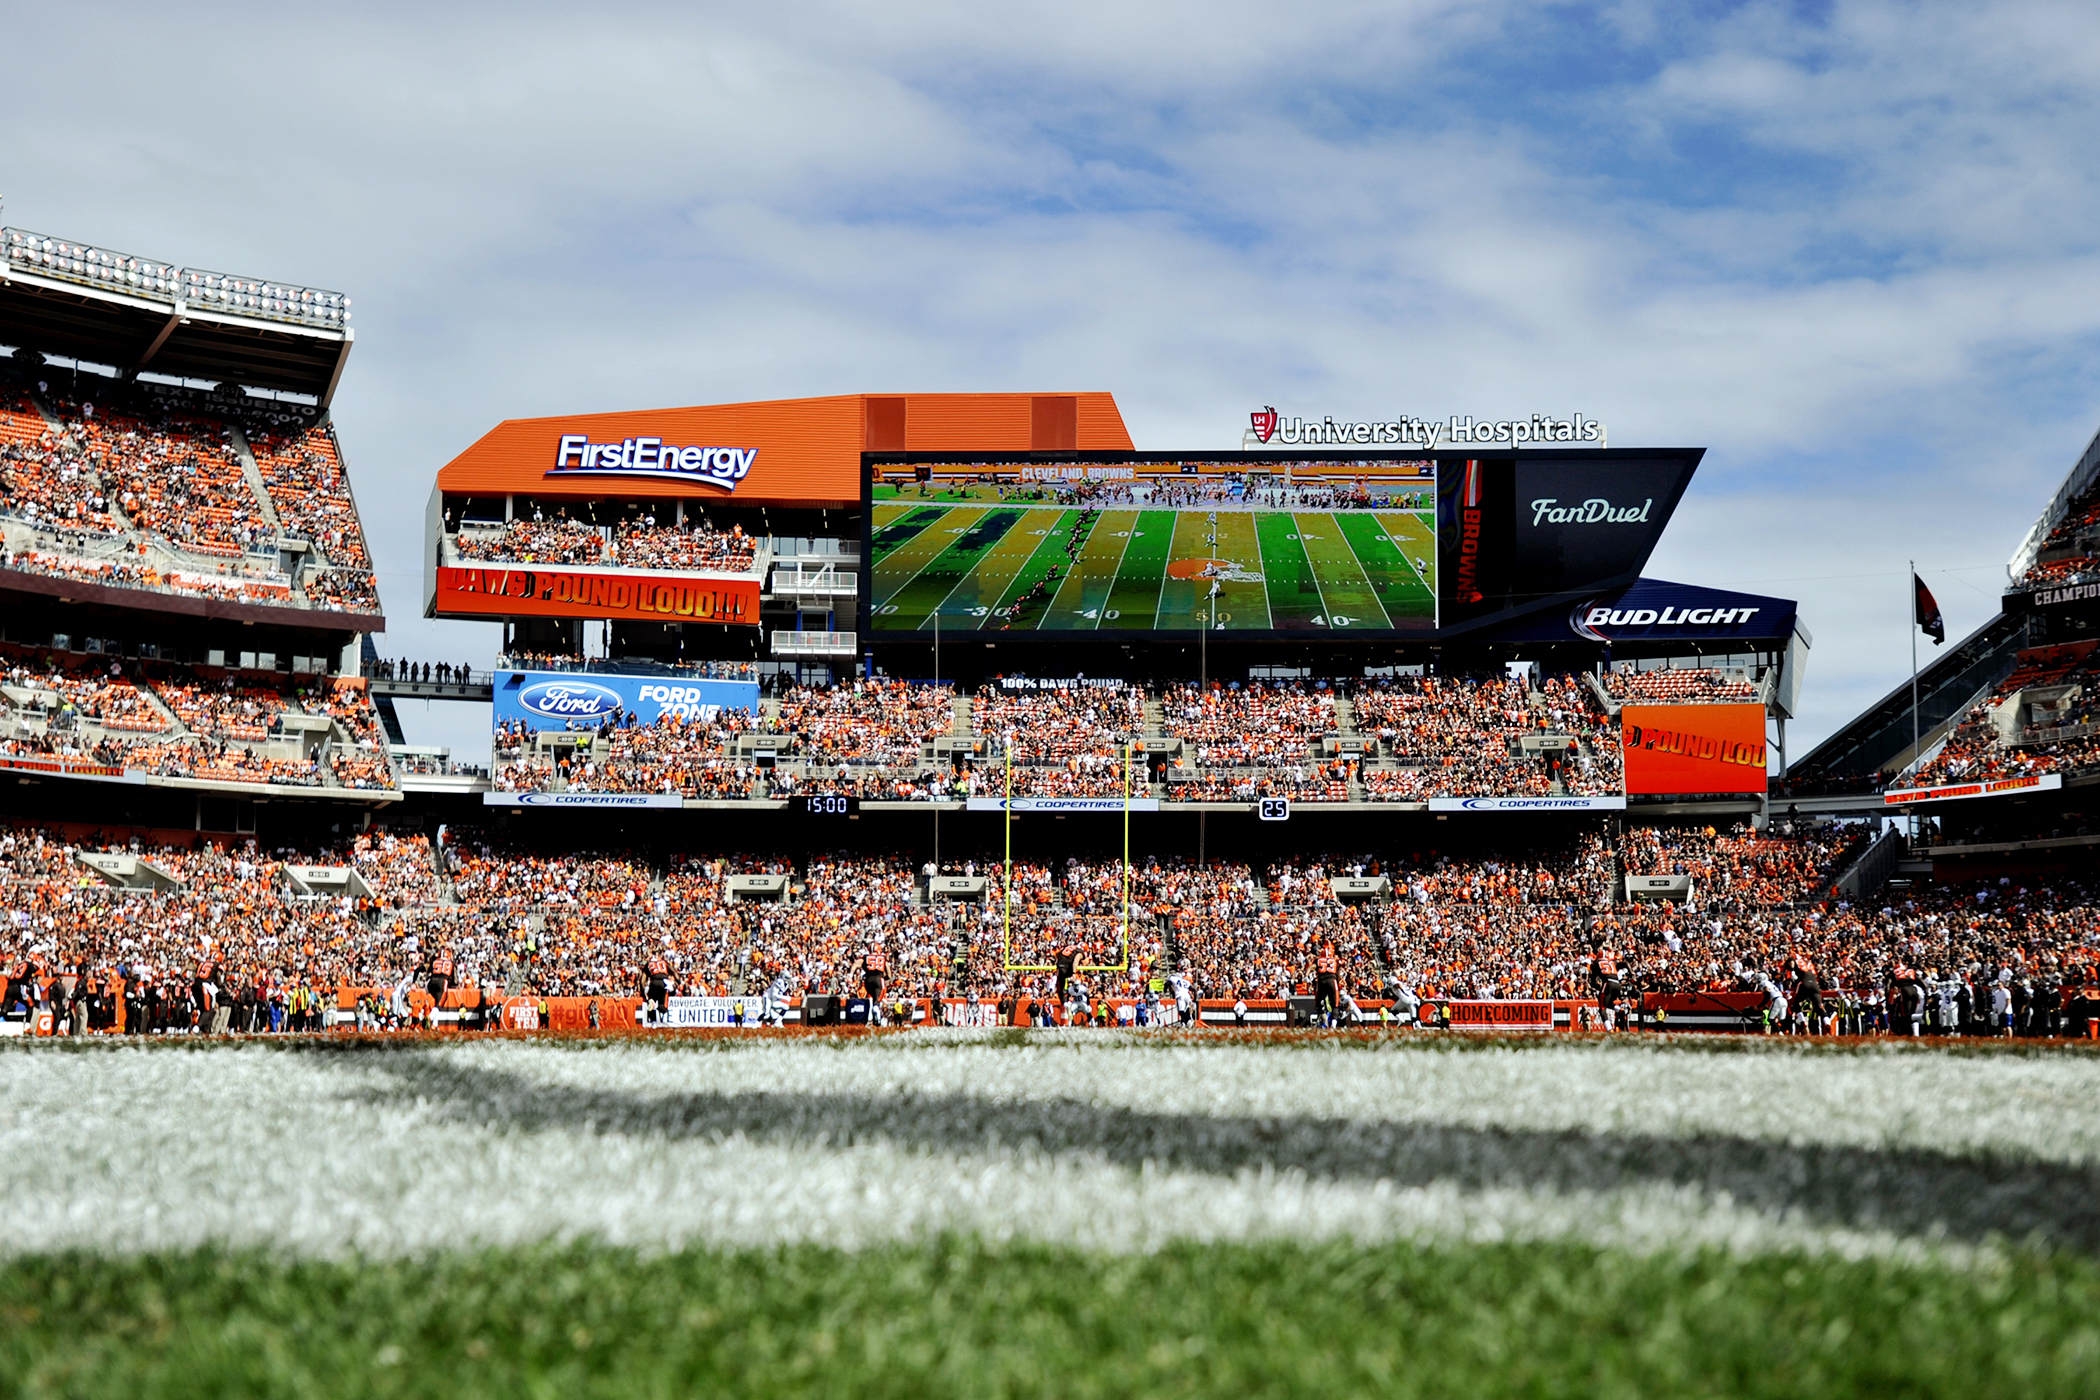 A general view of the opening kickoff of a game between the Oakland Raiders and Cleveland Browns on September 27, 2015 at FirstEnergy Stadium in Cleveland, Ohio.